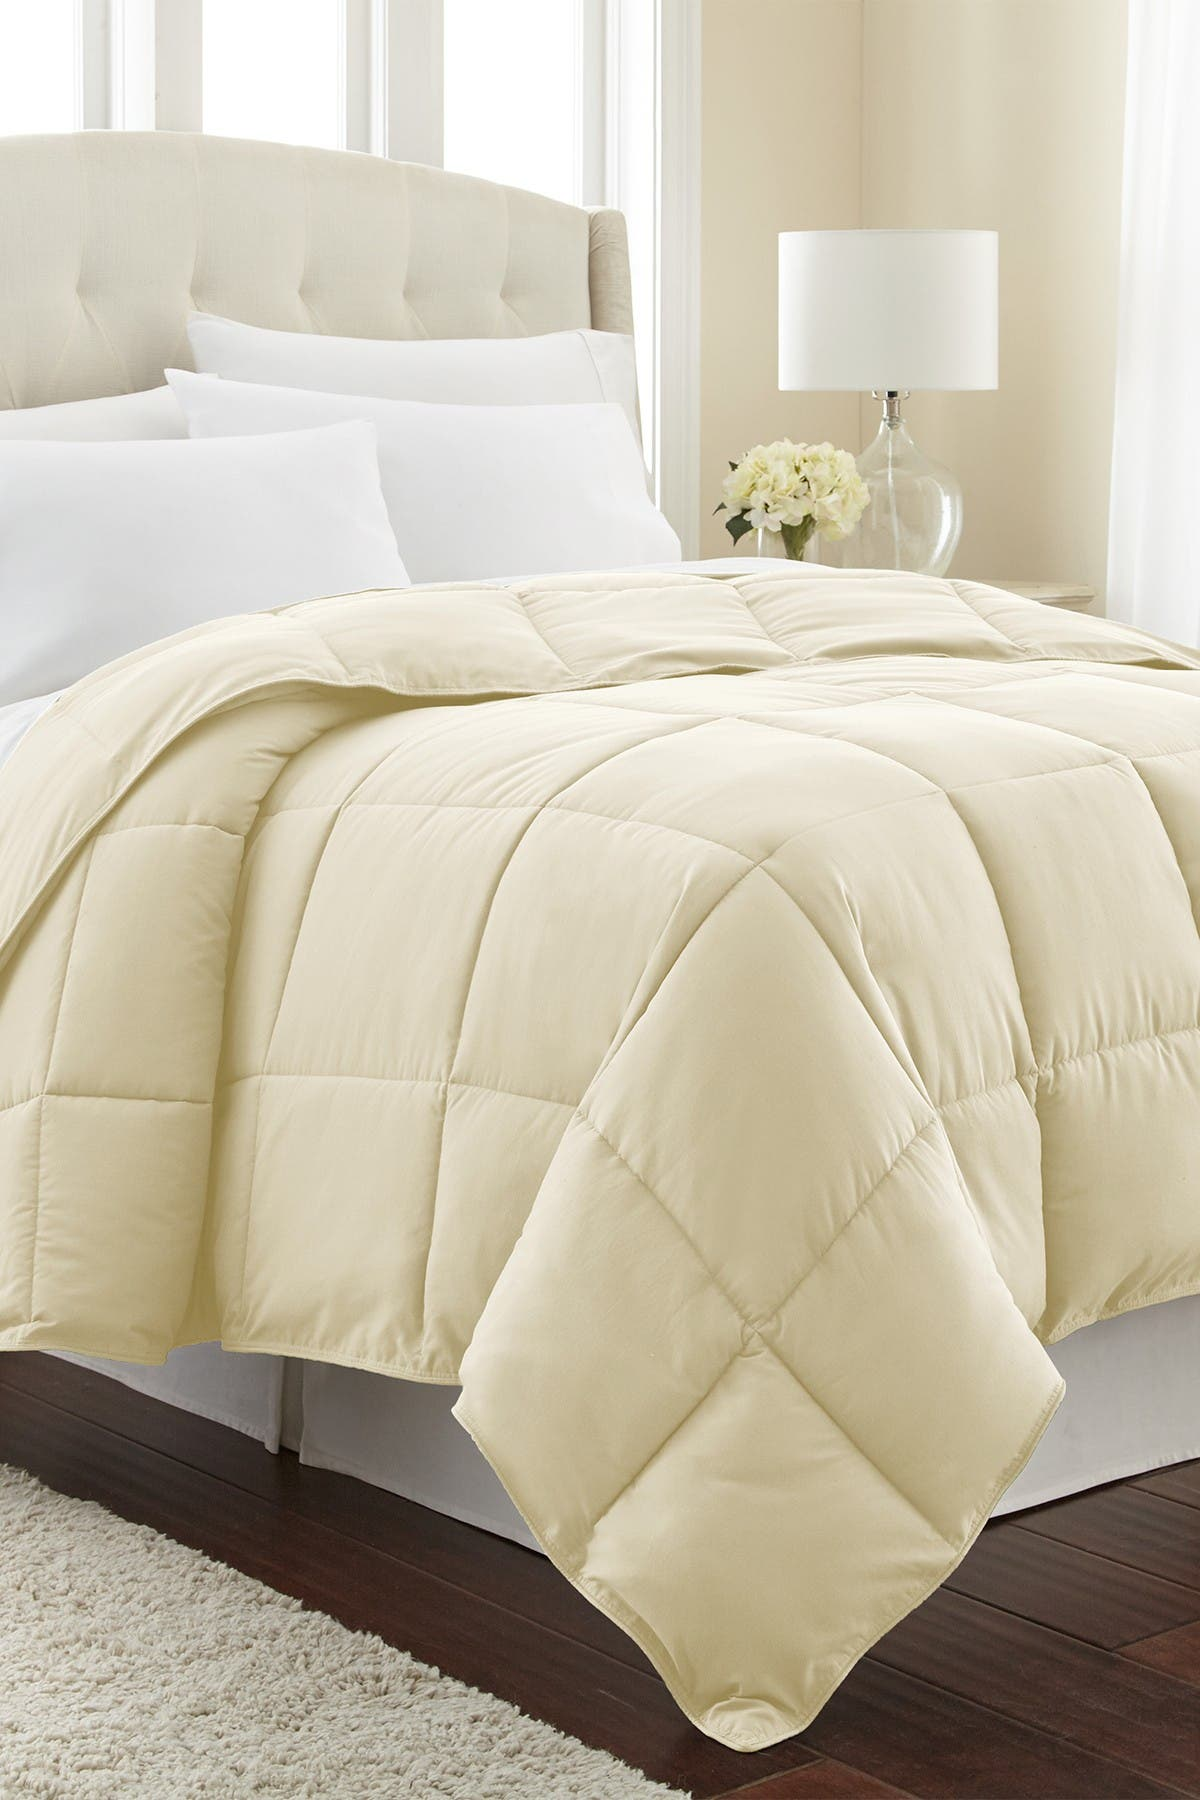 Image of SOUTHSHORE FINE LINENS Full/Queen Southshore Fine Linens Vilano Springs  Down Alternate Weight Comforter - Off White